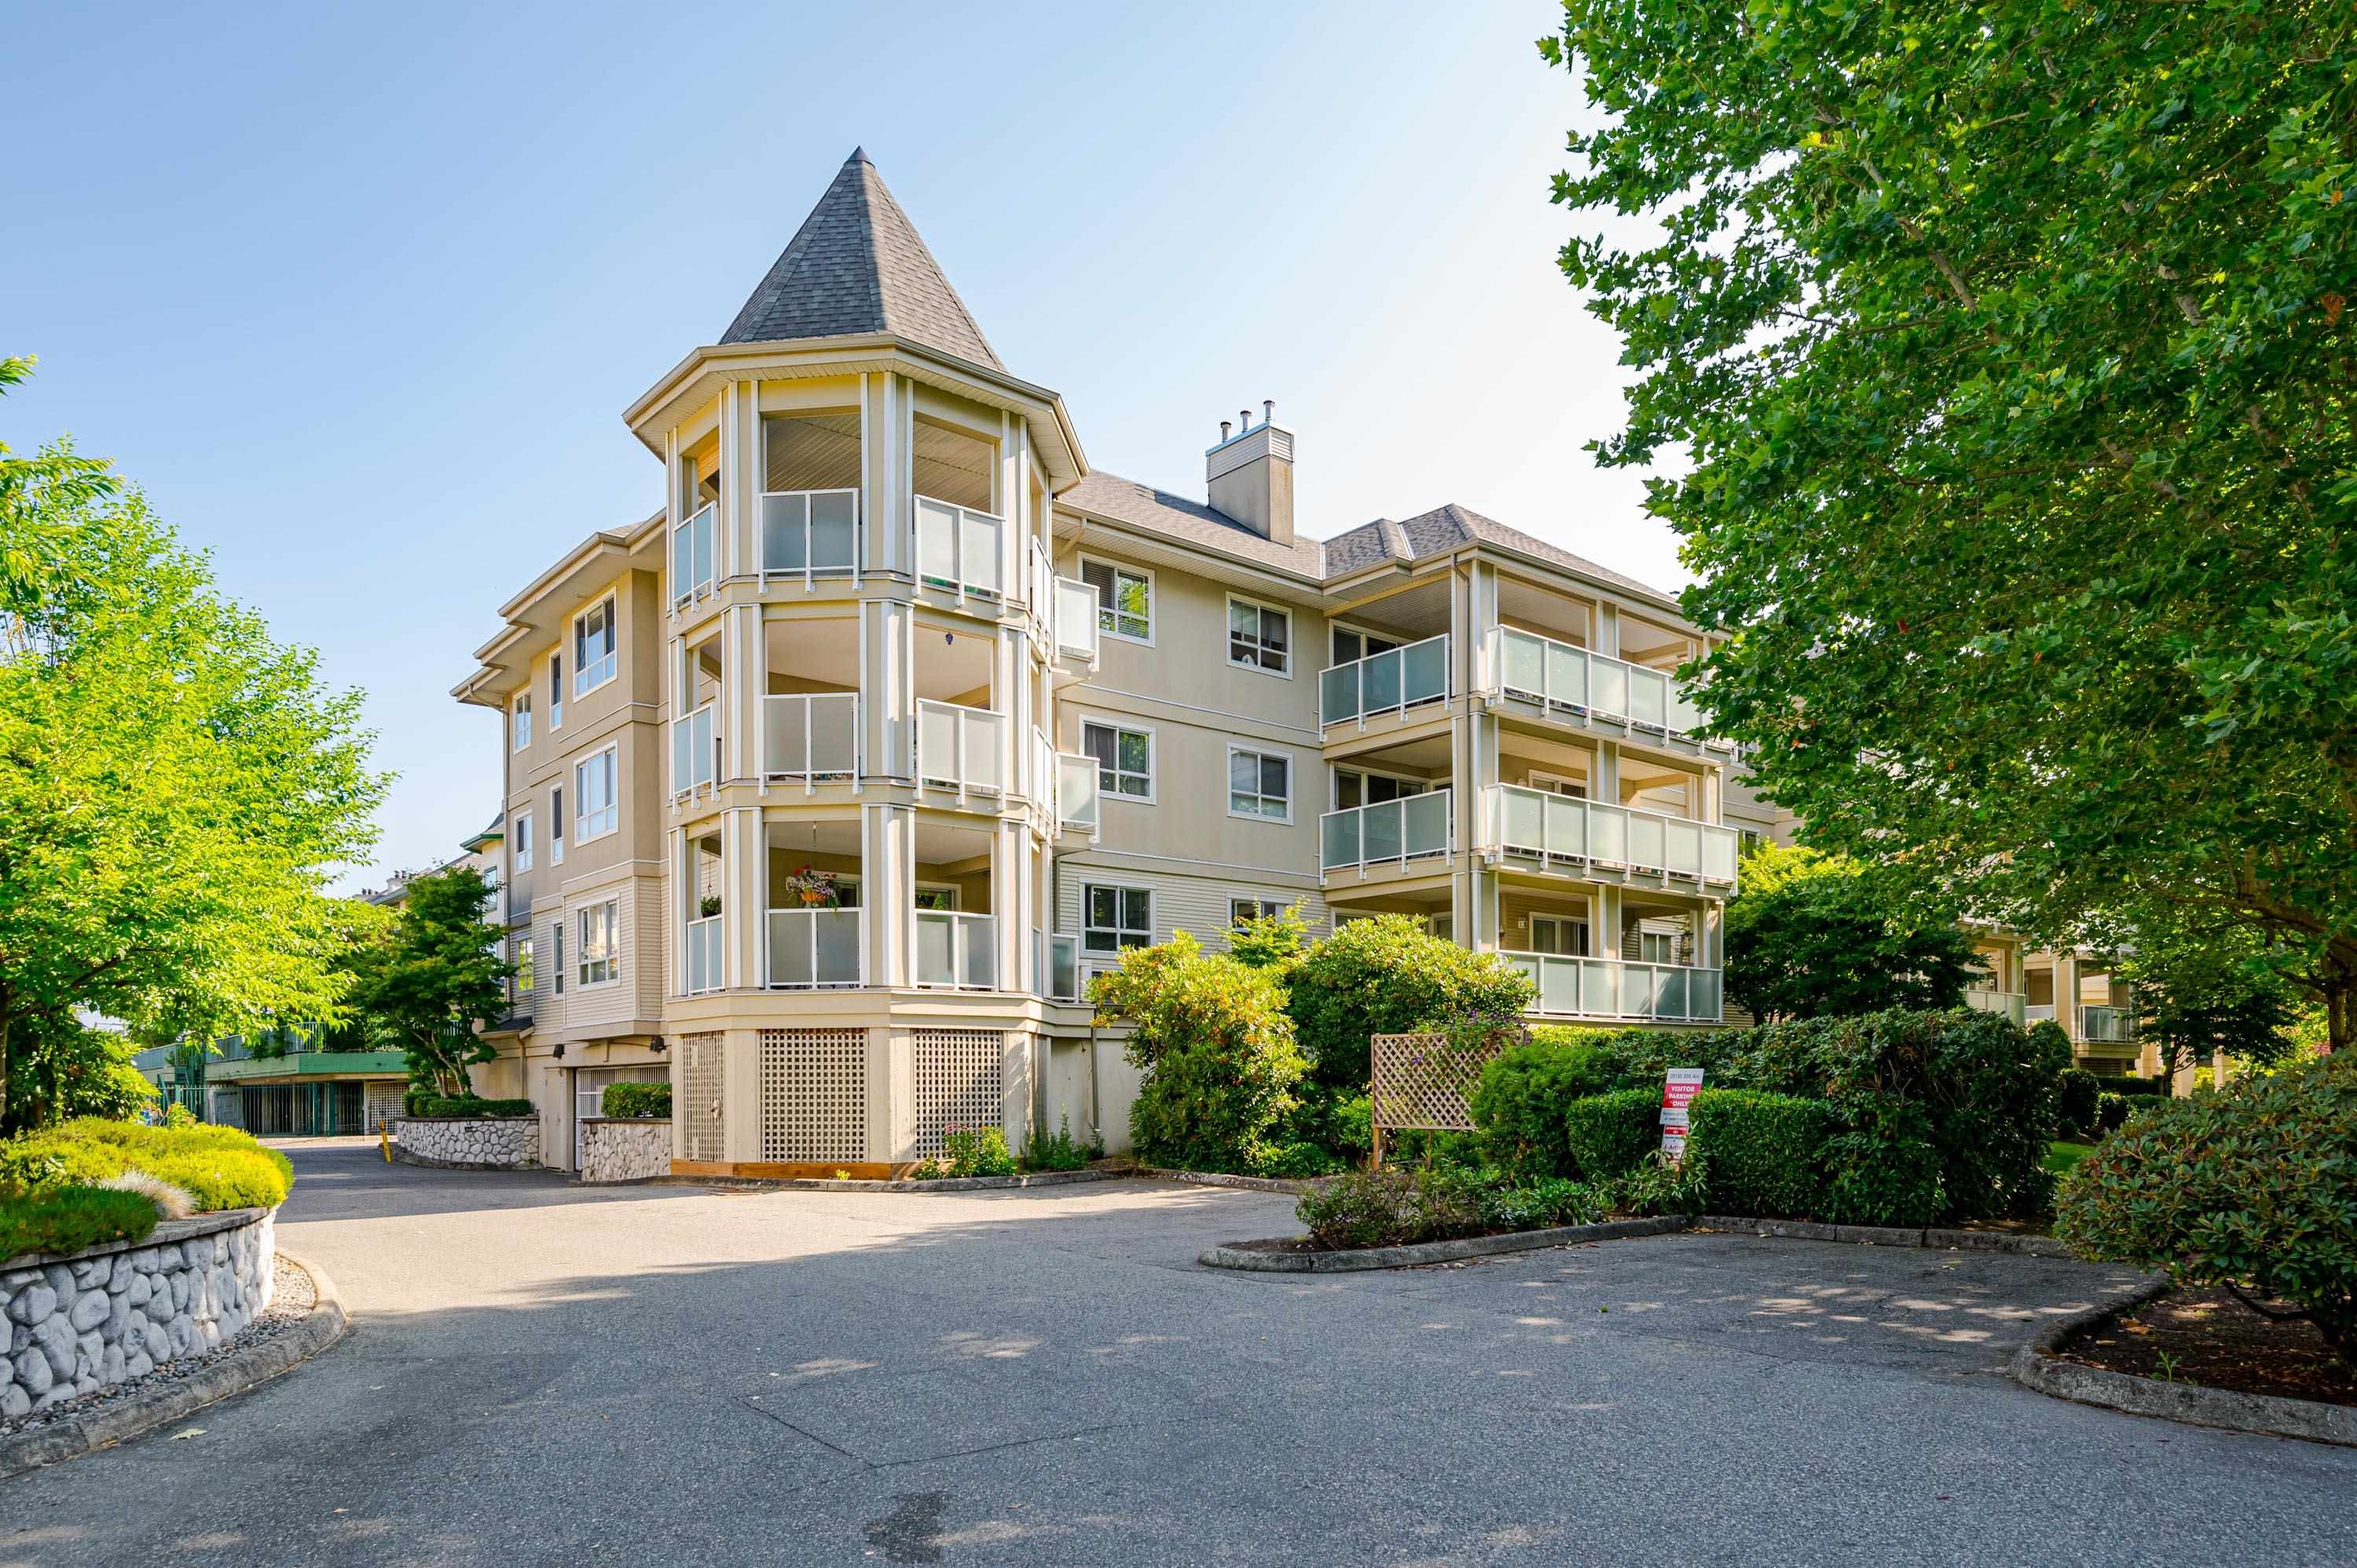 304 20145 55A AVENUE - Langley City Apartment/Condo for sale, 2 Bedrooms (R2619241) - #1